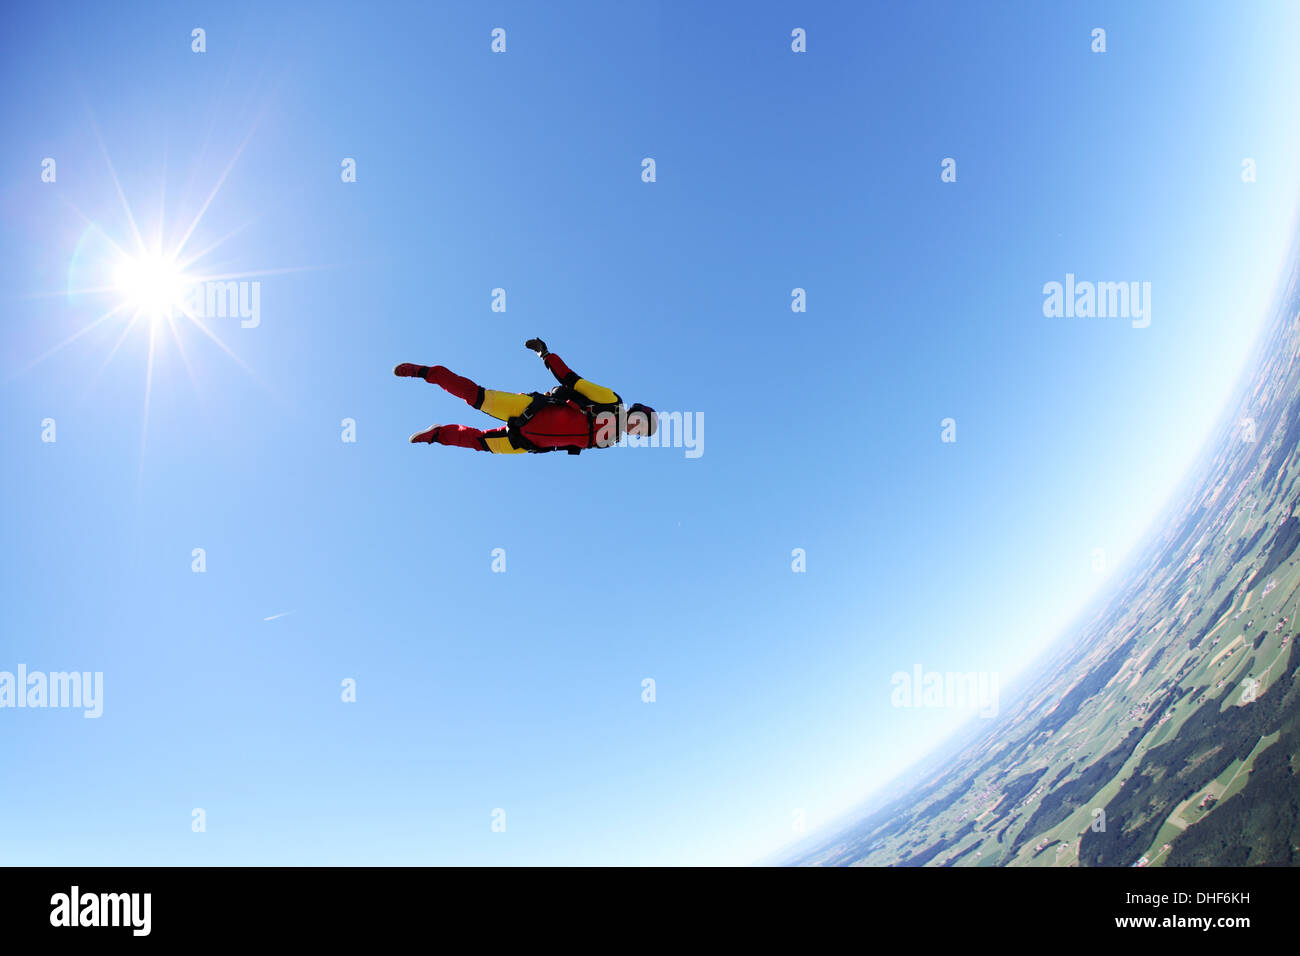 Skydiver free falling face down above Leutkirch, Bavaria, Germany Stock Photo